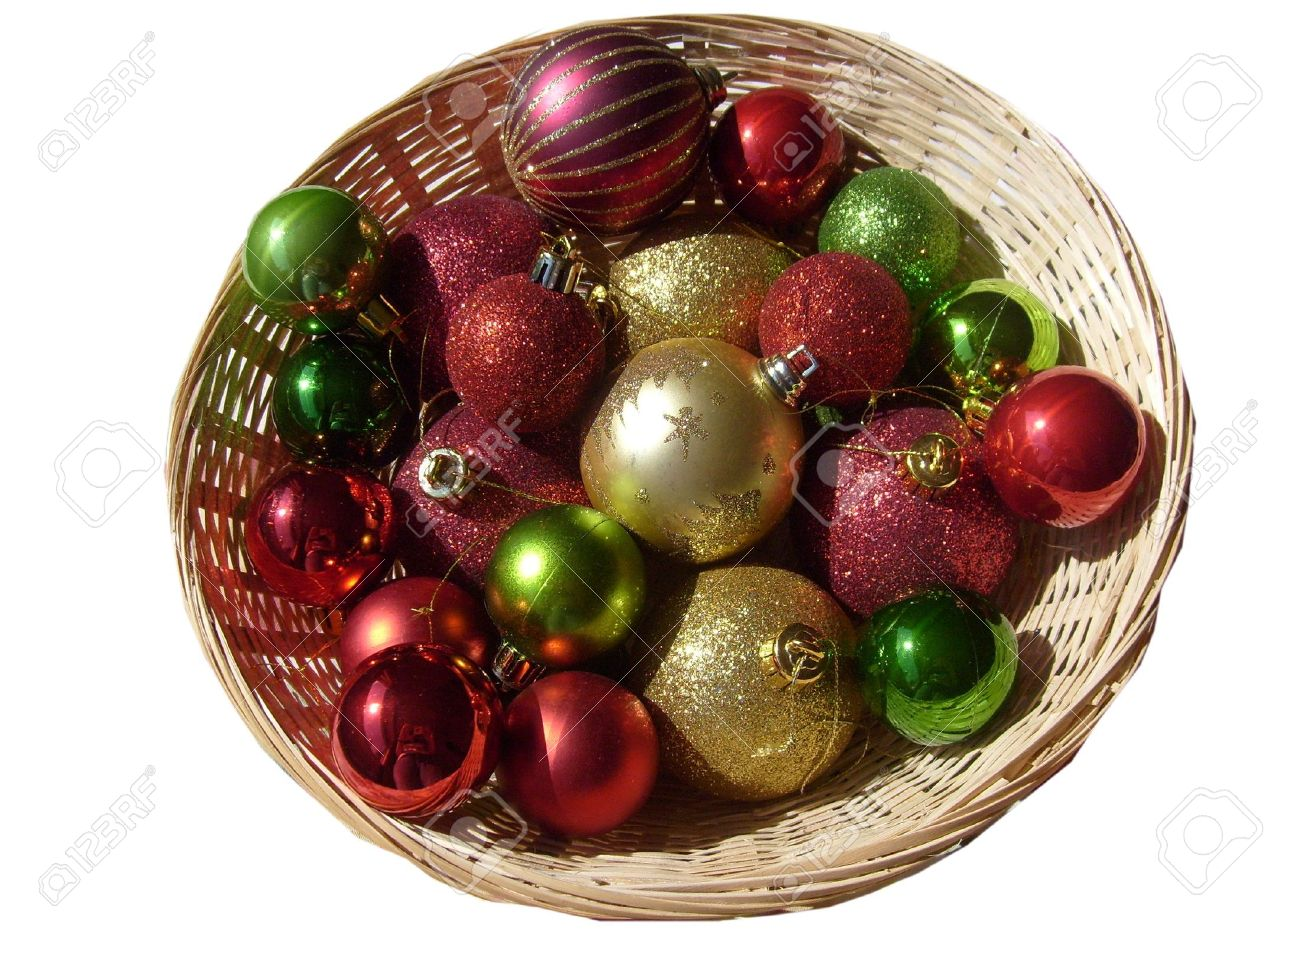 Green christmas tree with red decorations - Basket Of Red Gold And Green Christmas Tree Decorations Baubles Stock Photo 3376577